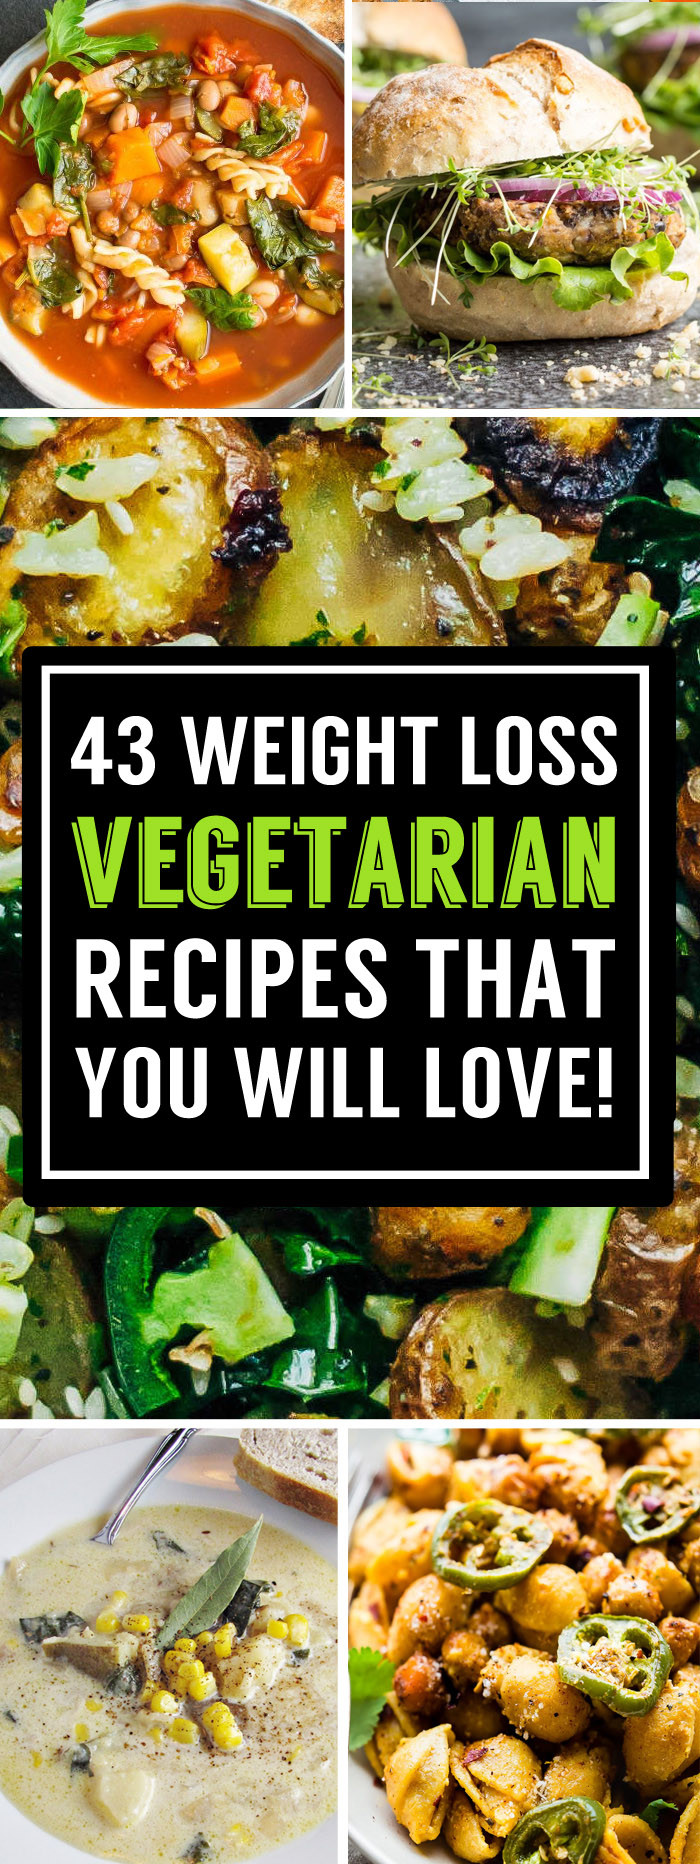 Healthy Vegetable Recipes For Weight Loss  43 Delicious Ve arian Recipes That Can Help Boost Your